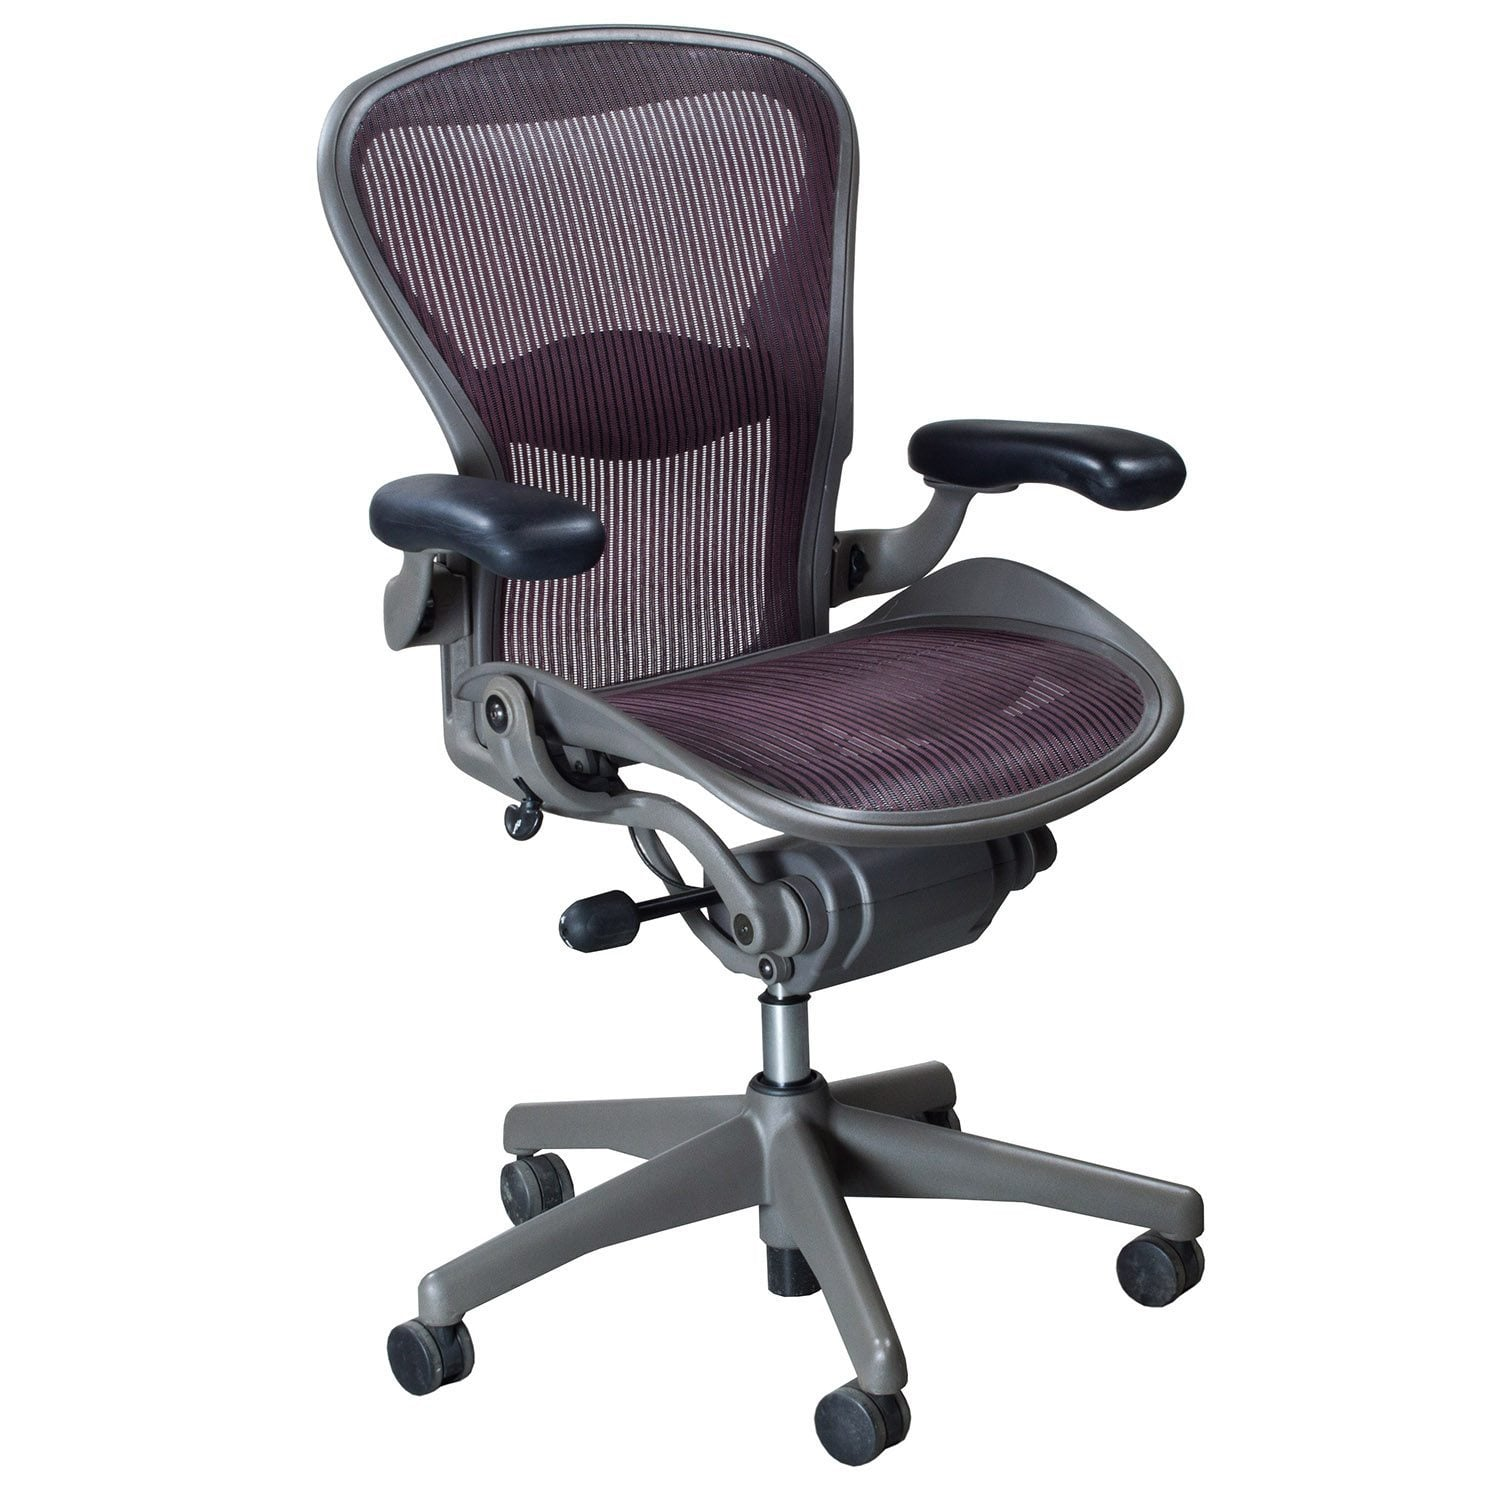 aeron chair sizes target brookline dining herman miller used size b task garnet